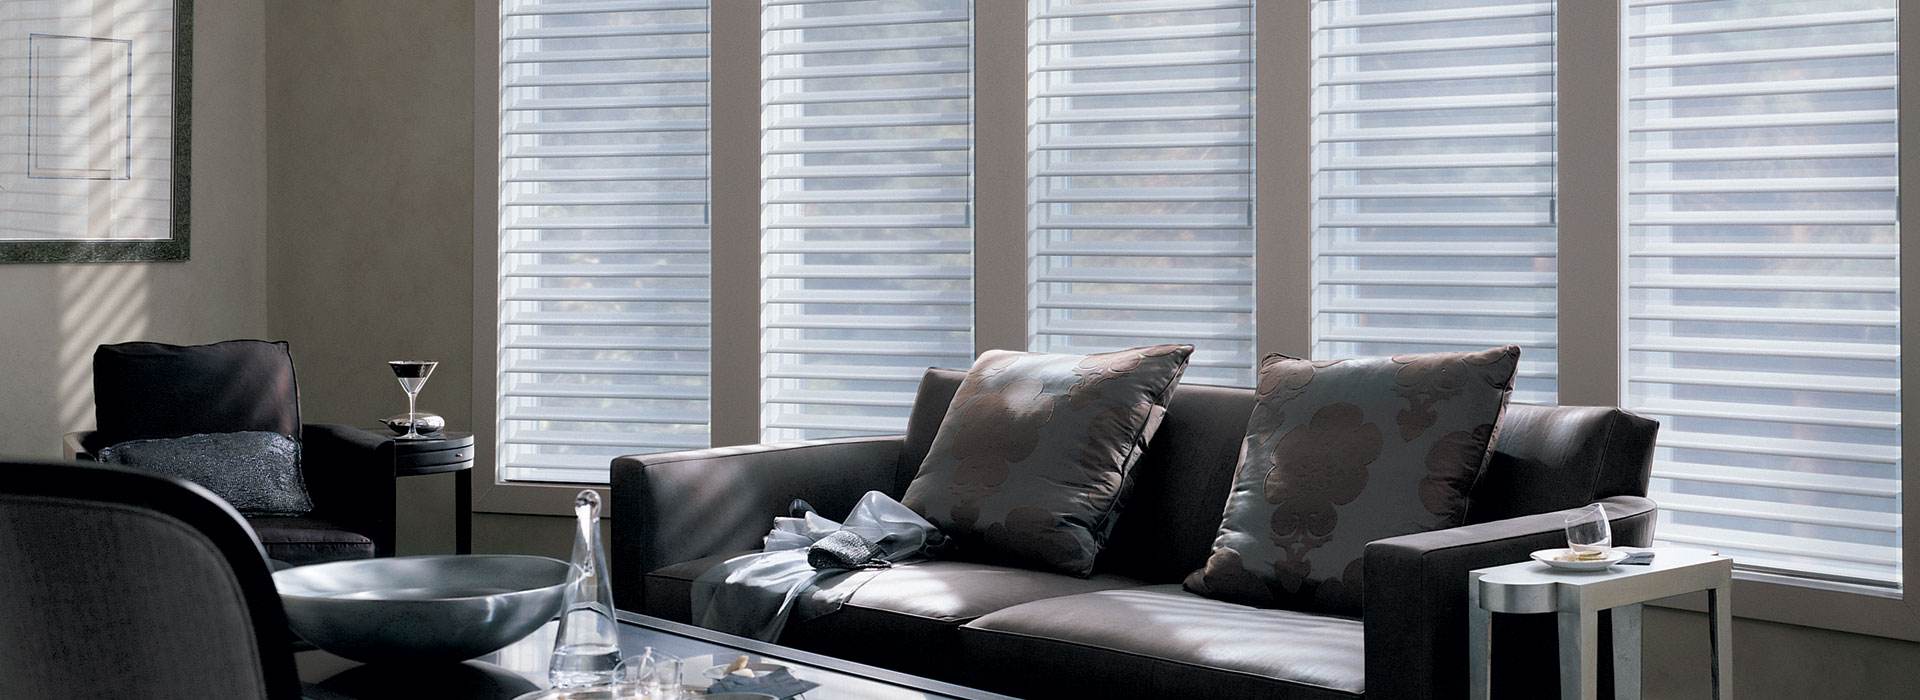 Blinds Slider Image